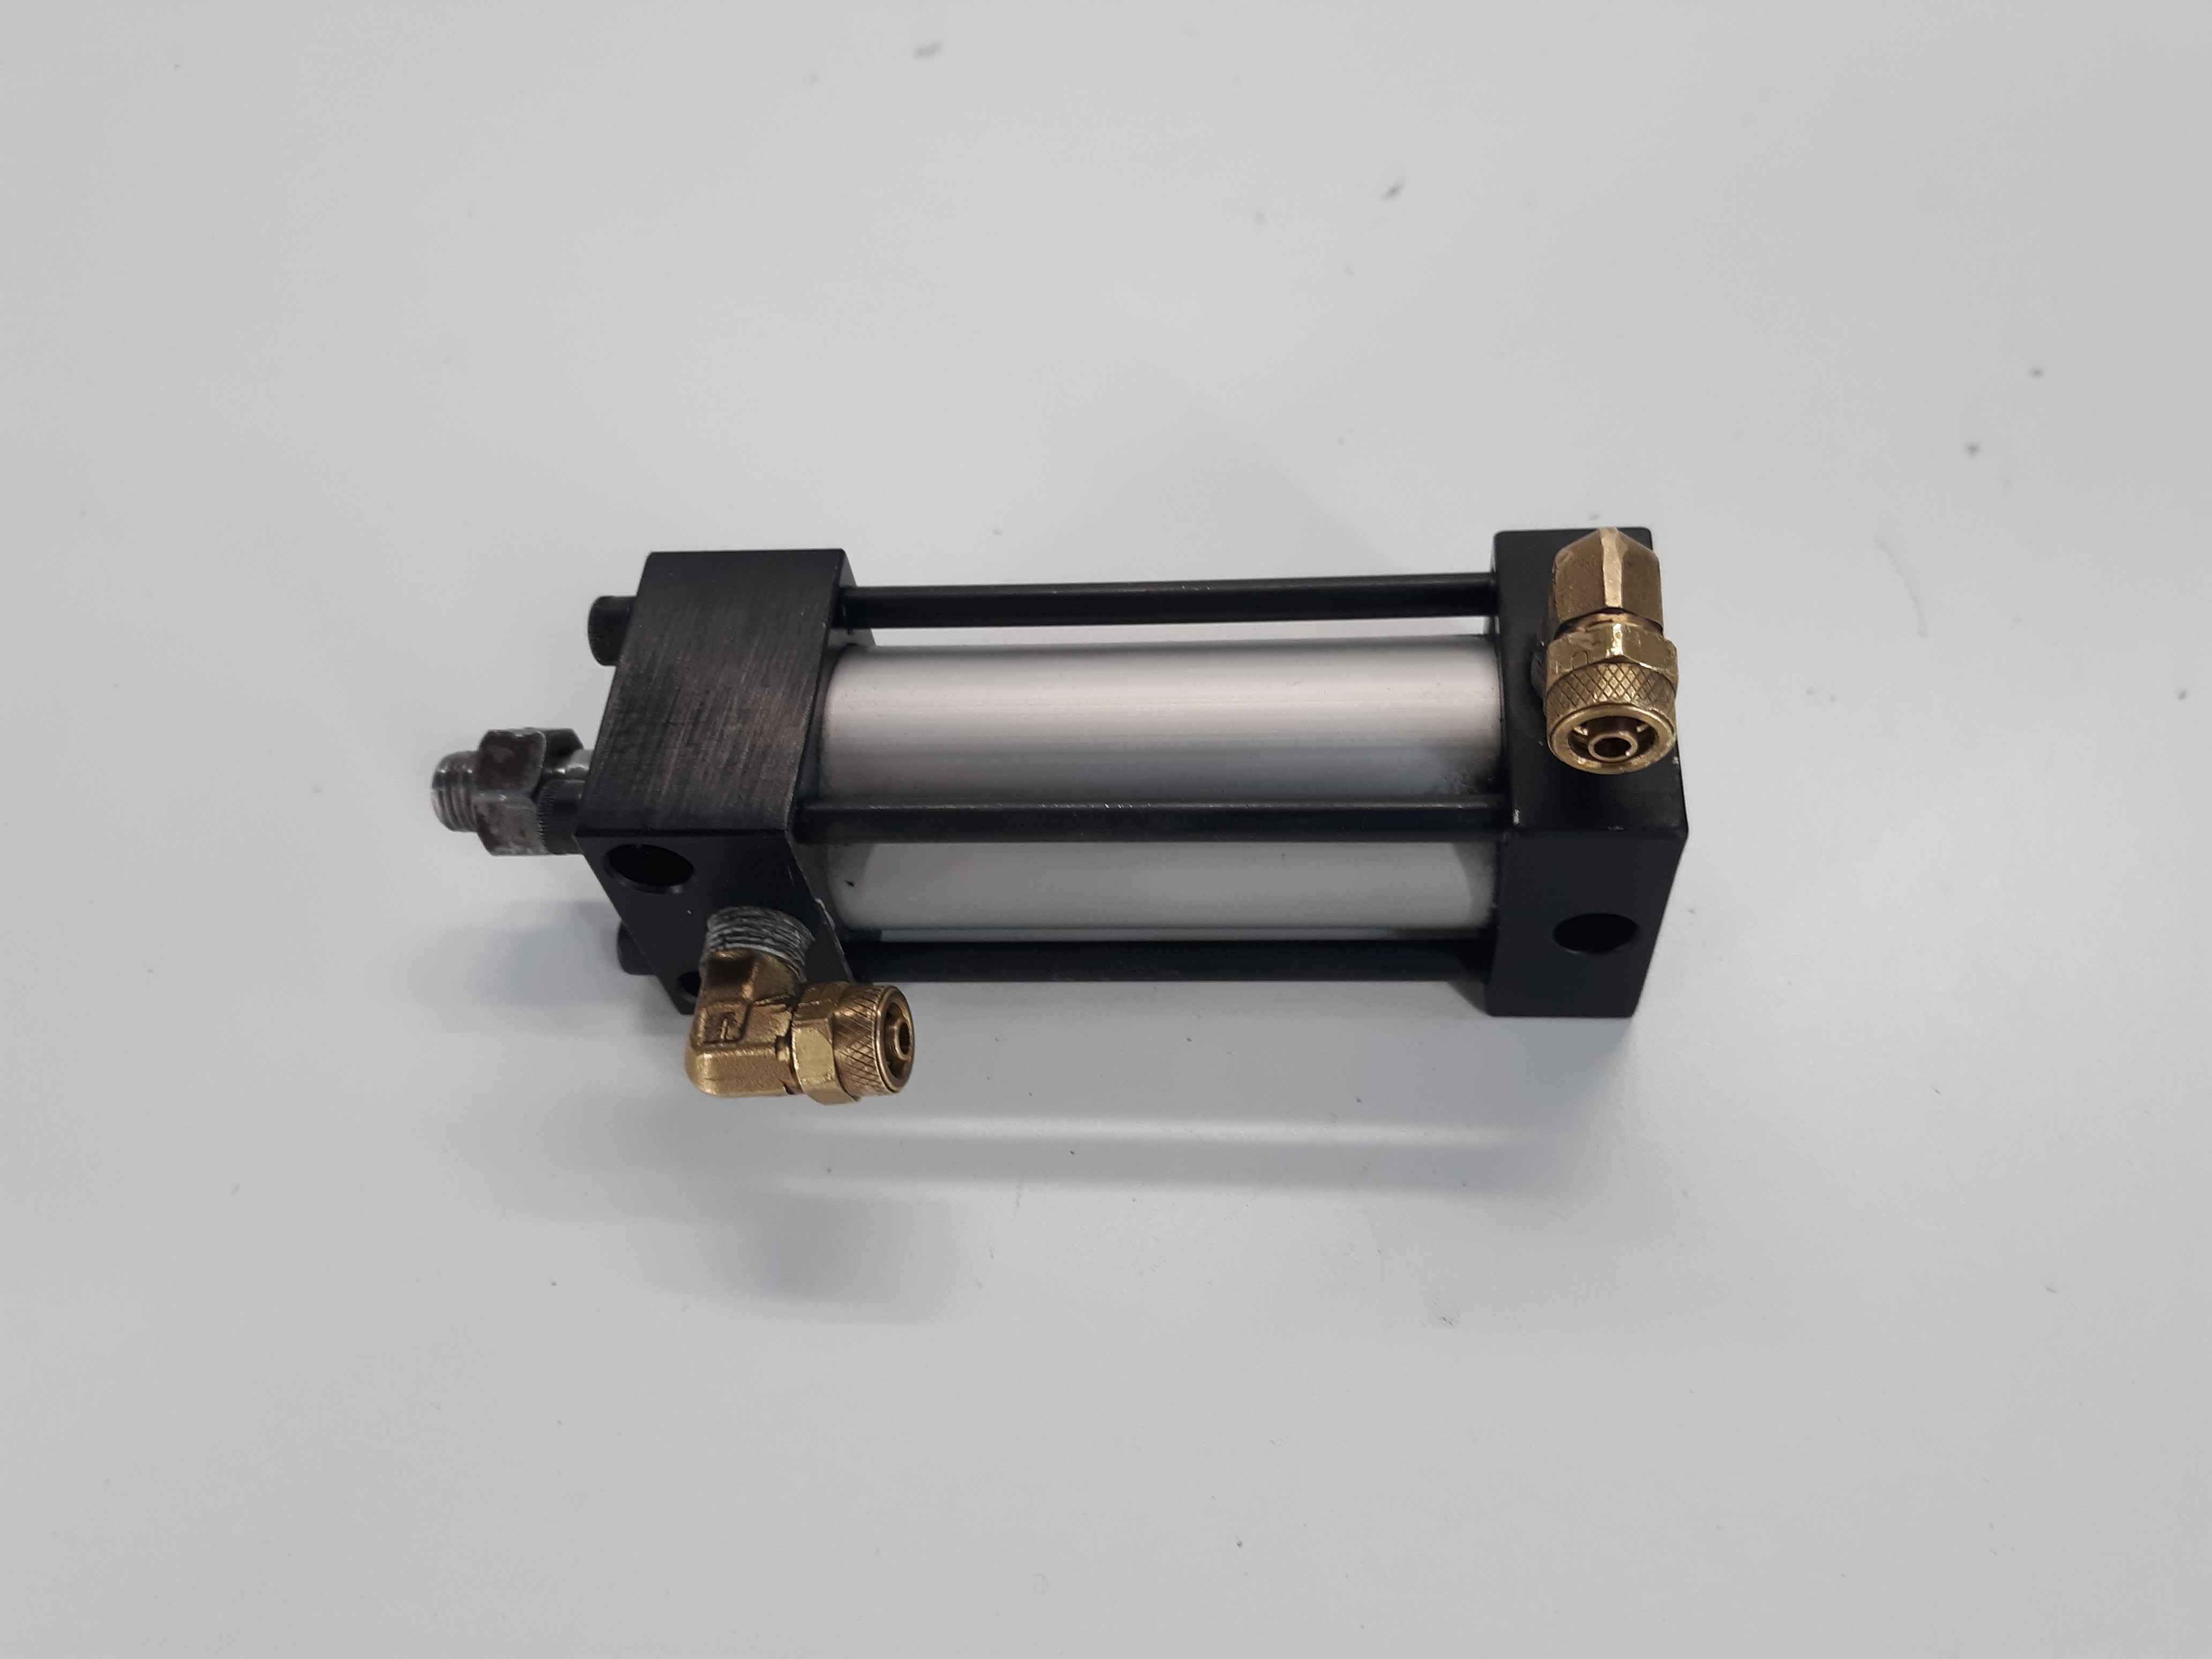 SpeedAire 1A430 Pneumatic Air Cylinder